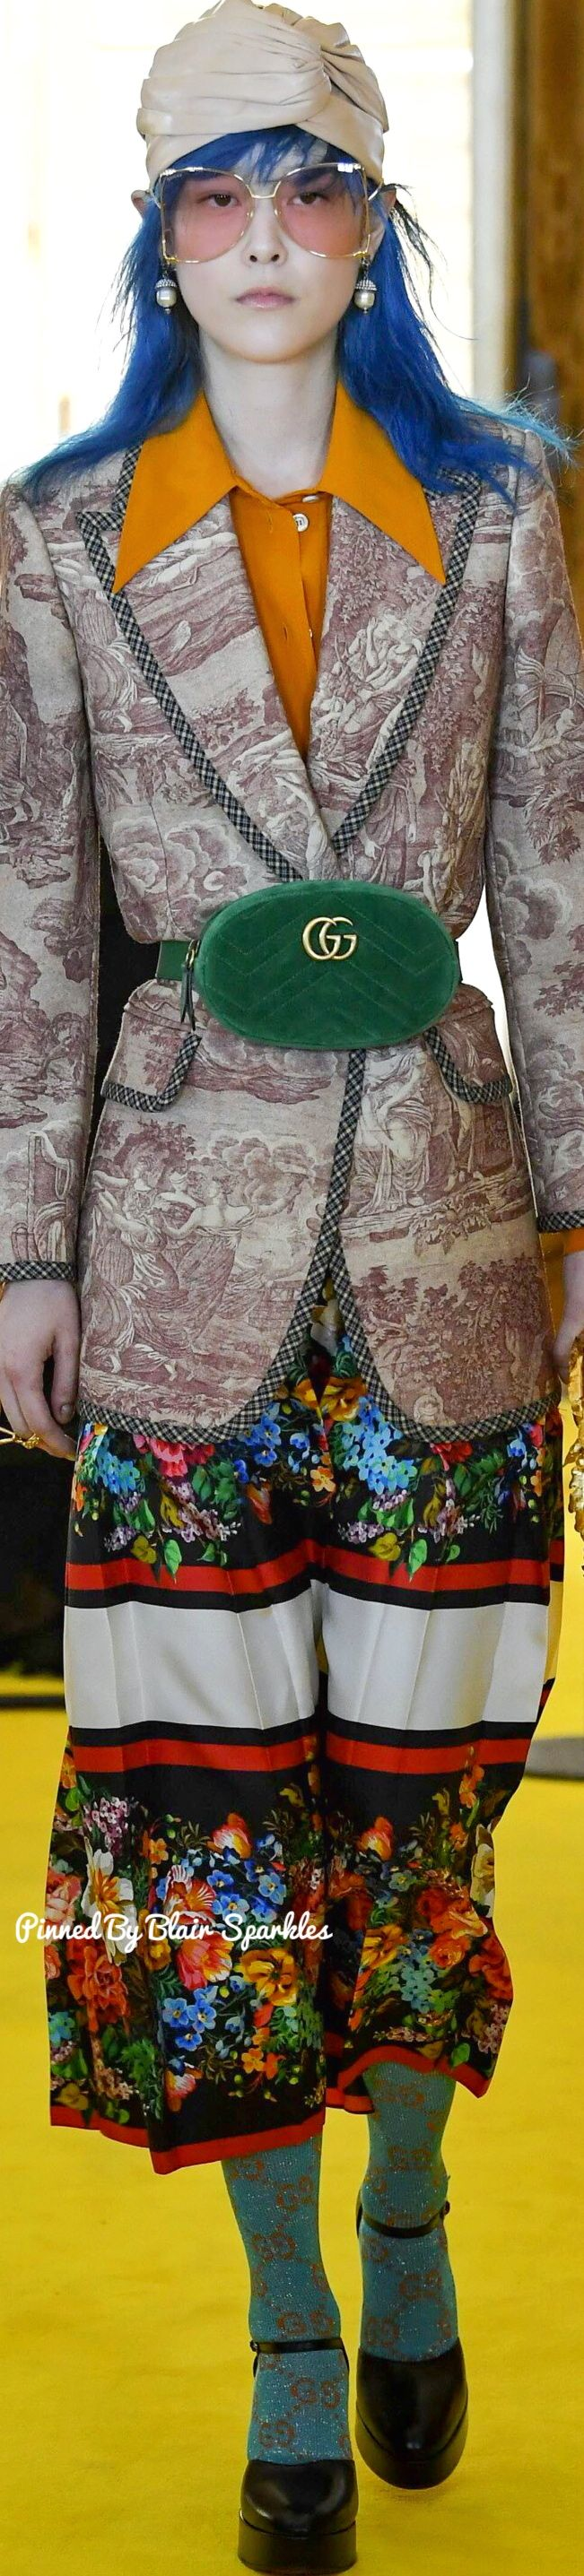 Gucci Resort 2018 ♕♚εїз | BLAIR SPARKLES |